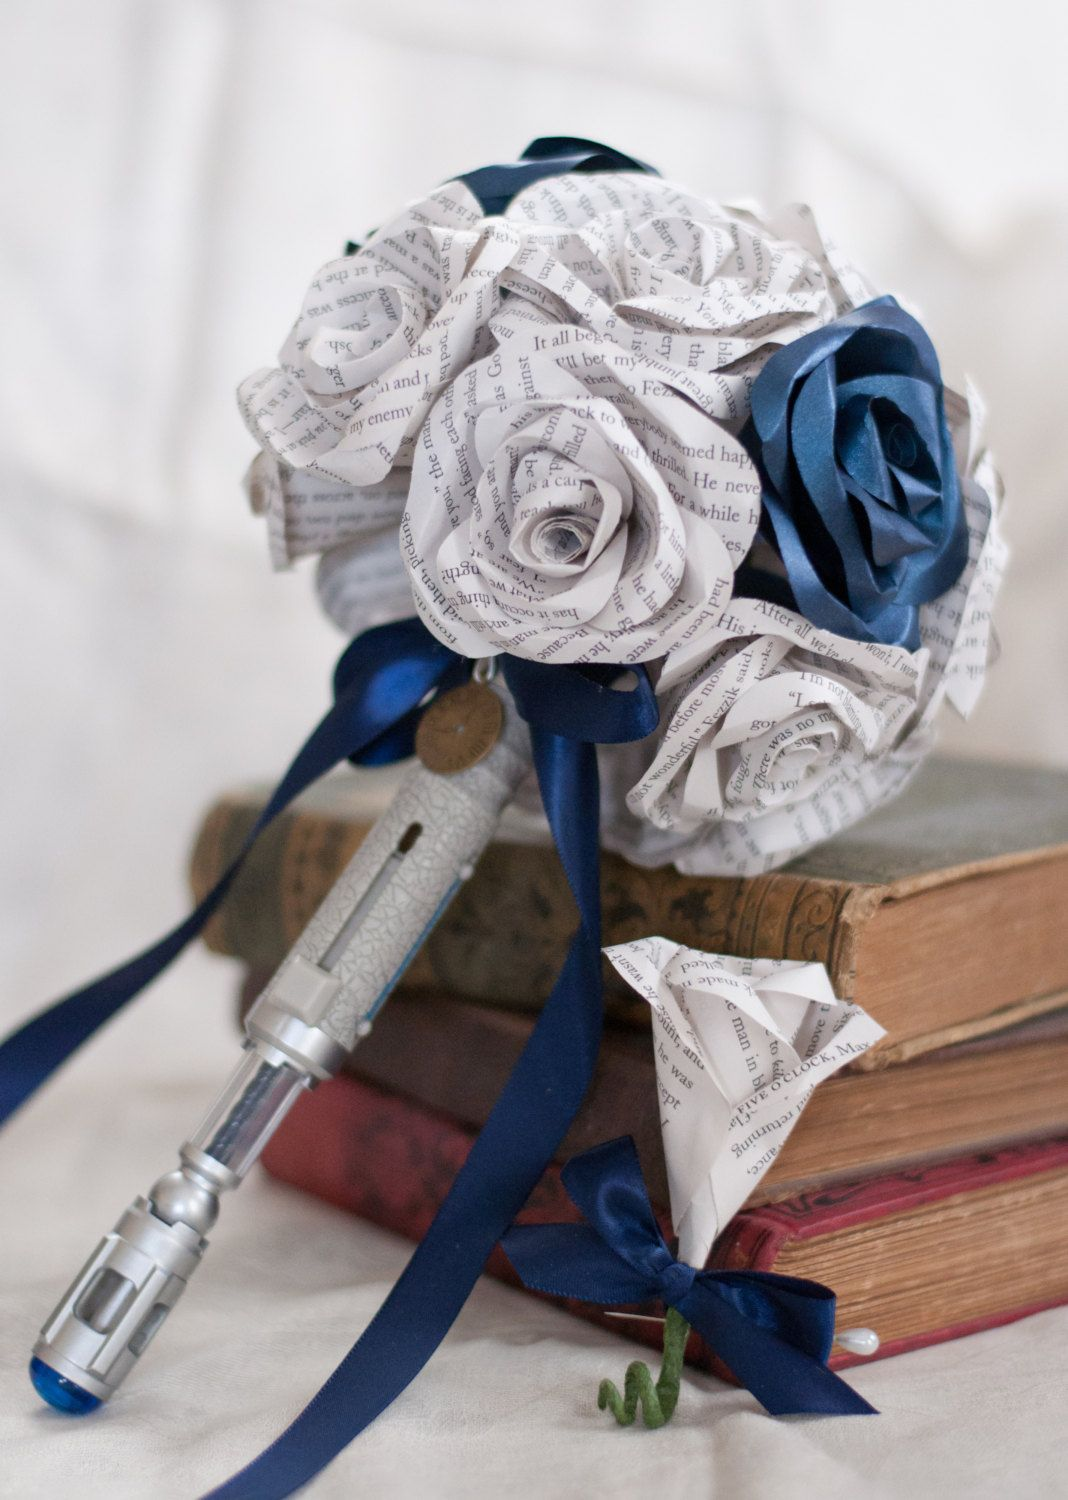 Dr Who Sonic Screwdriver Handled PaperBook Page Flower Bouquet